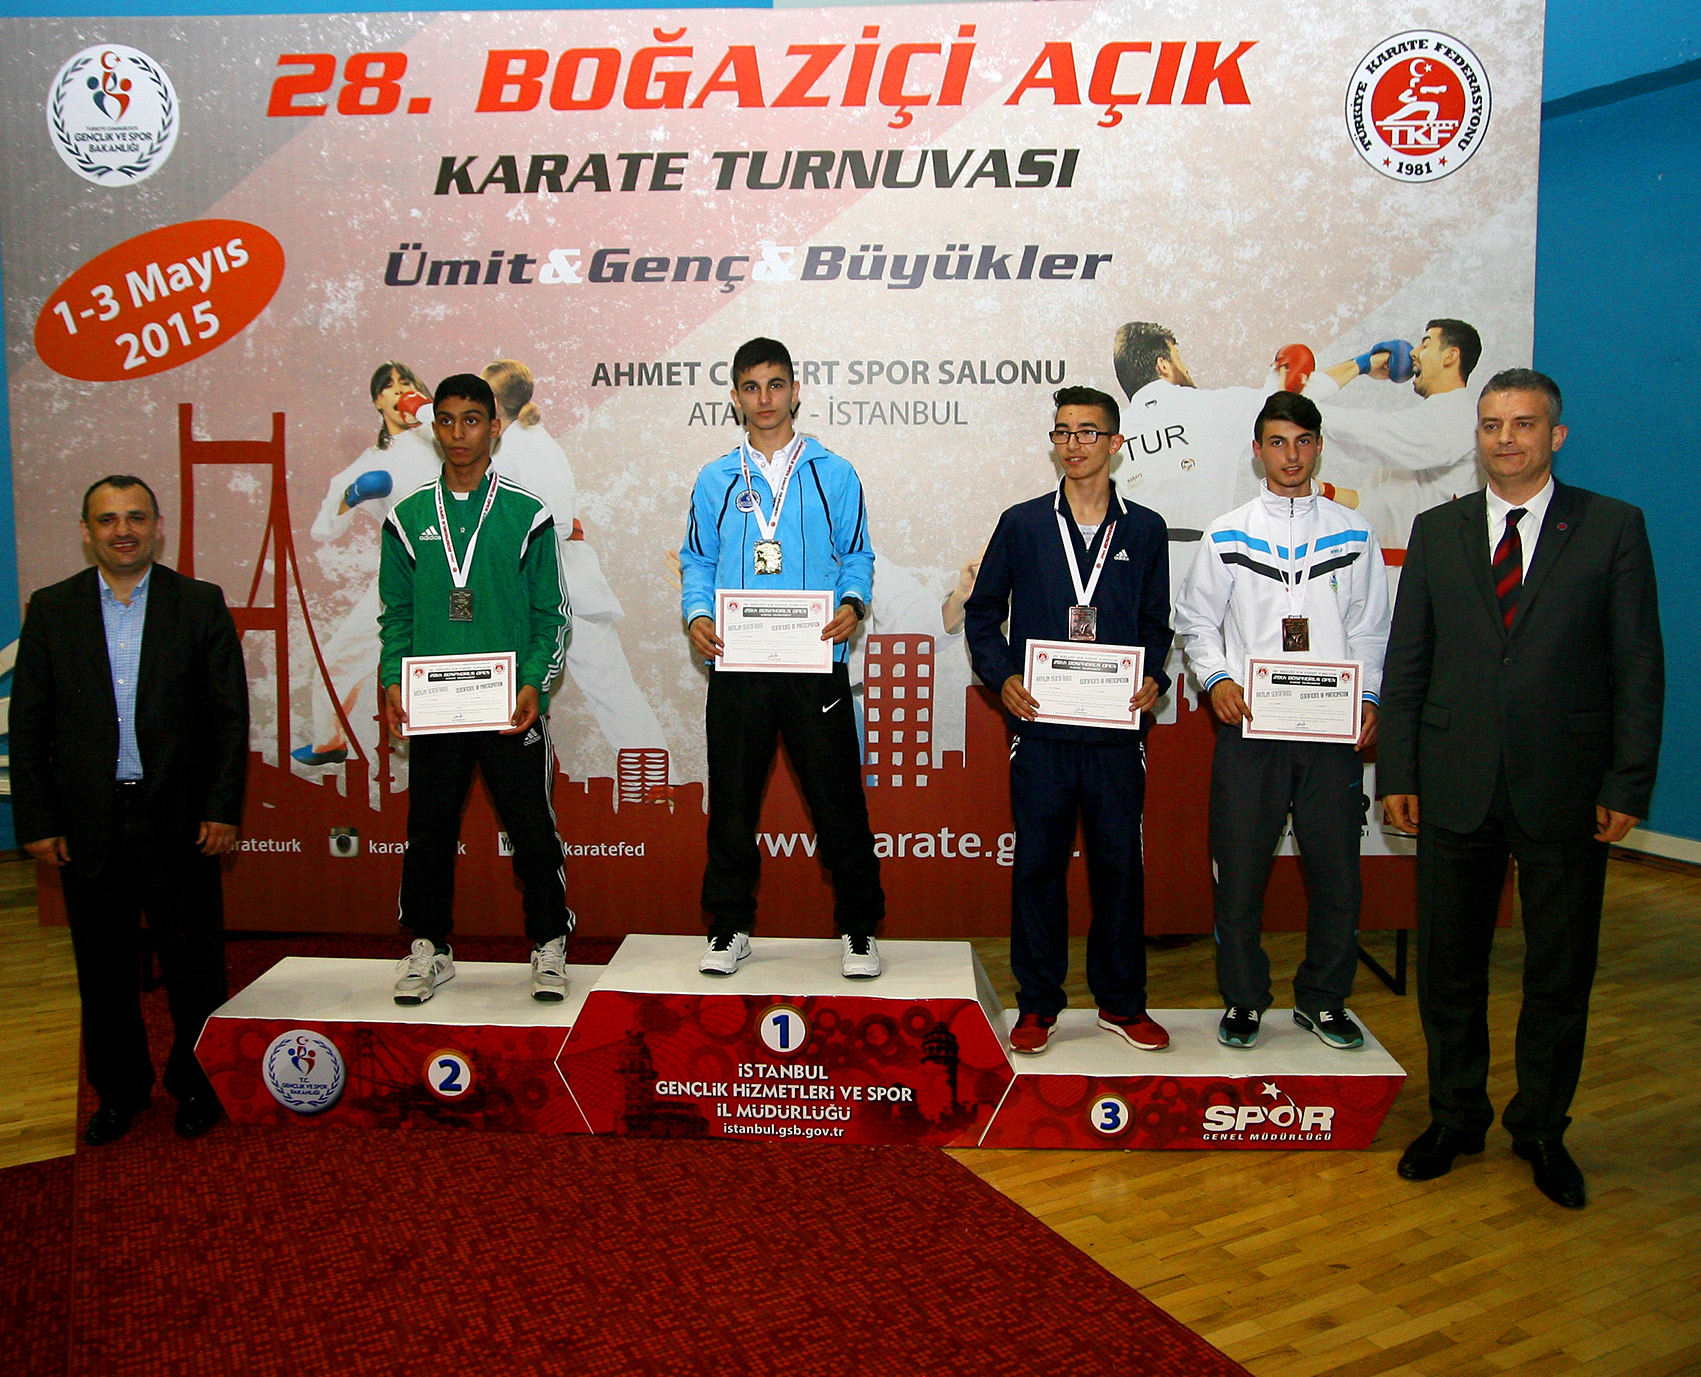 28th BOSPHORUS OPEN KARATE TOURNAMENT